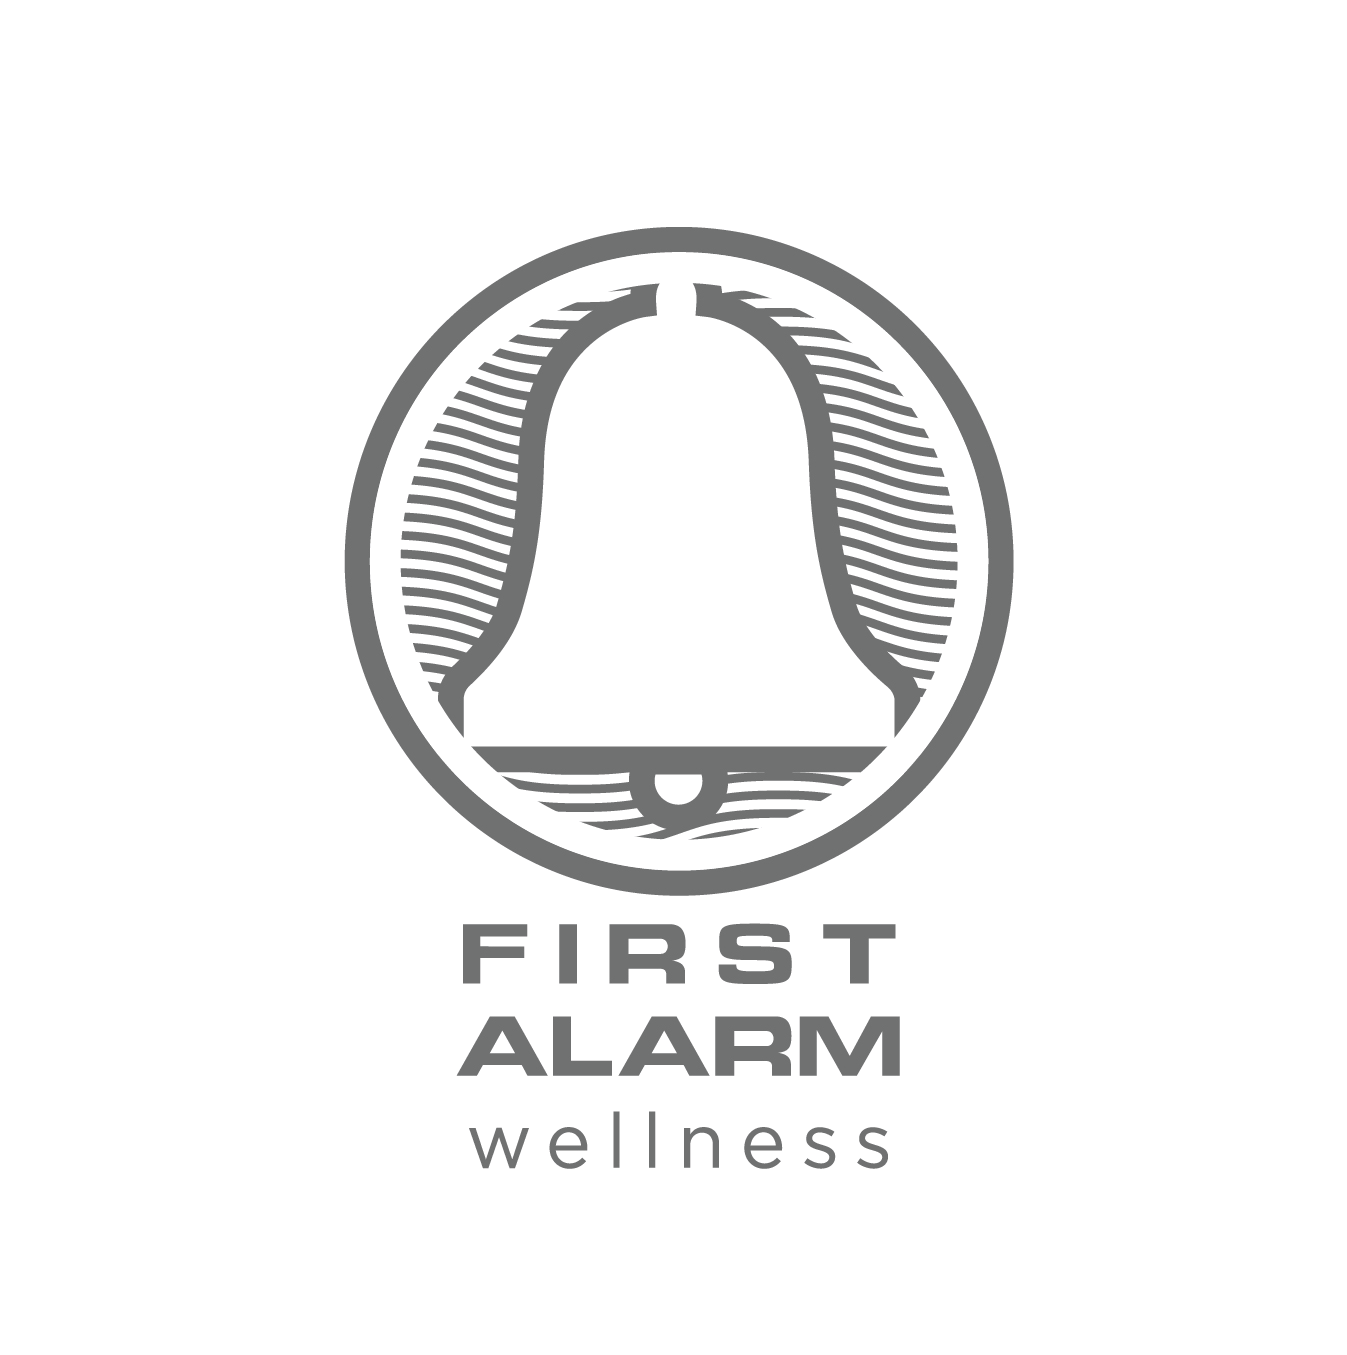 First Alarm Wellness